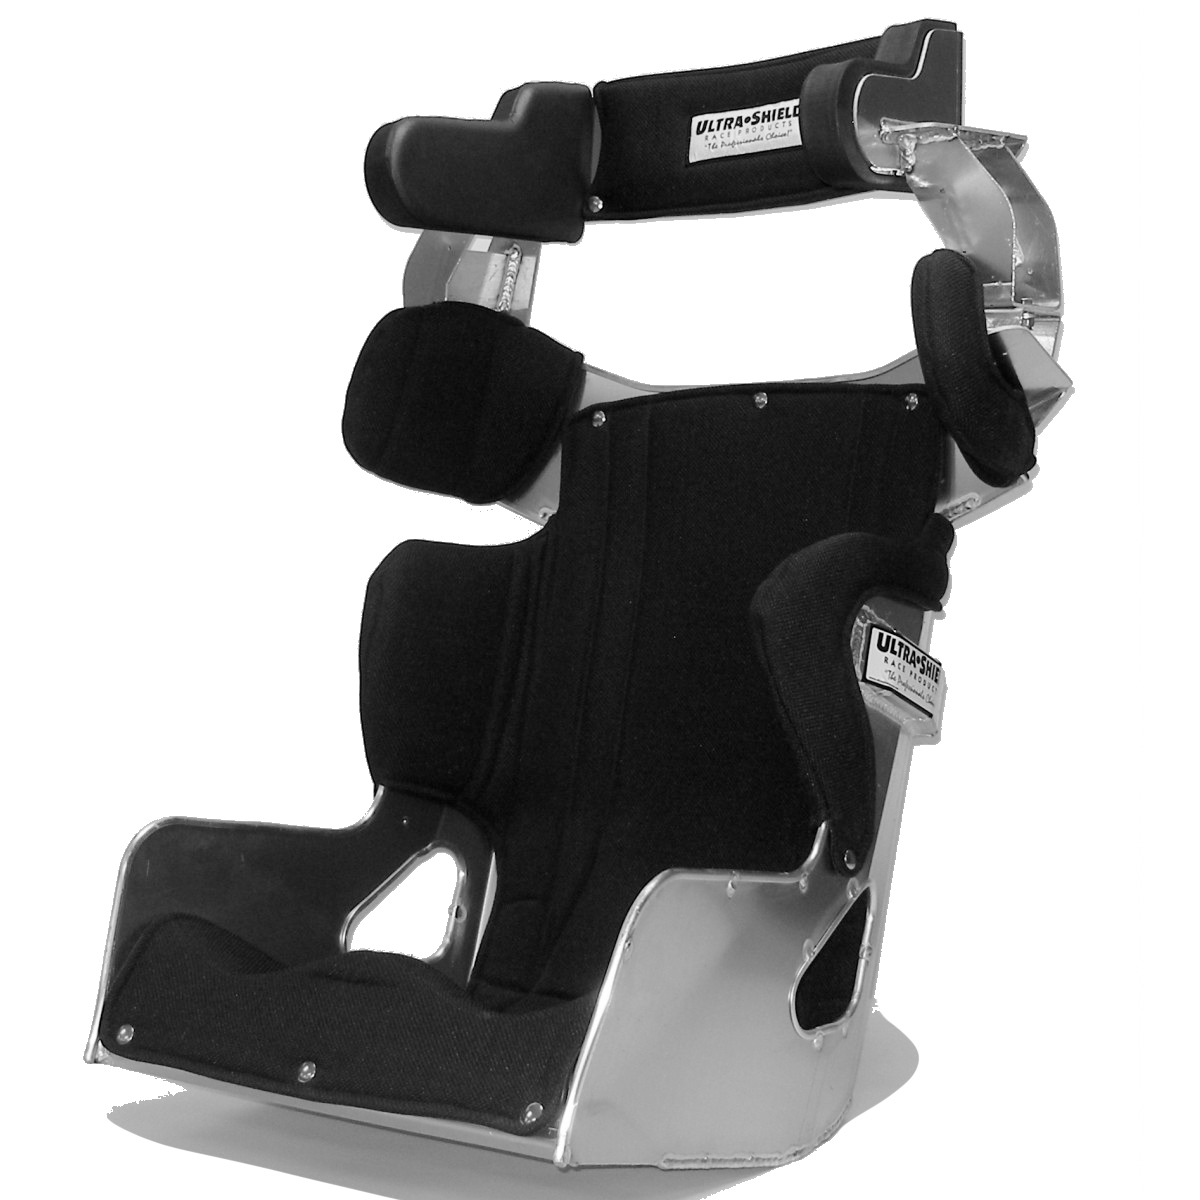 Ultra Shield EF25200 Seat, 2019 Economy Full Containment Halo, 15 in Wide, 20 Degree Layback, Snap Cover Included, Aluminum, Natural, Each